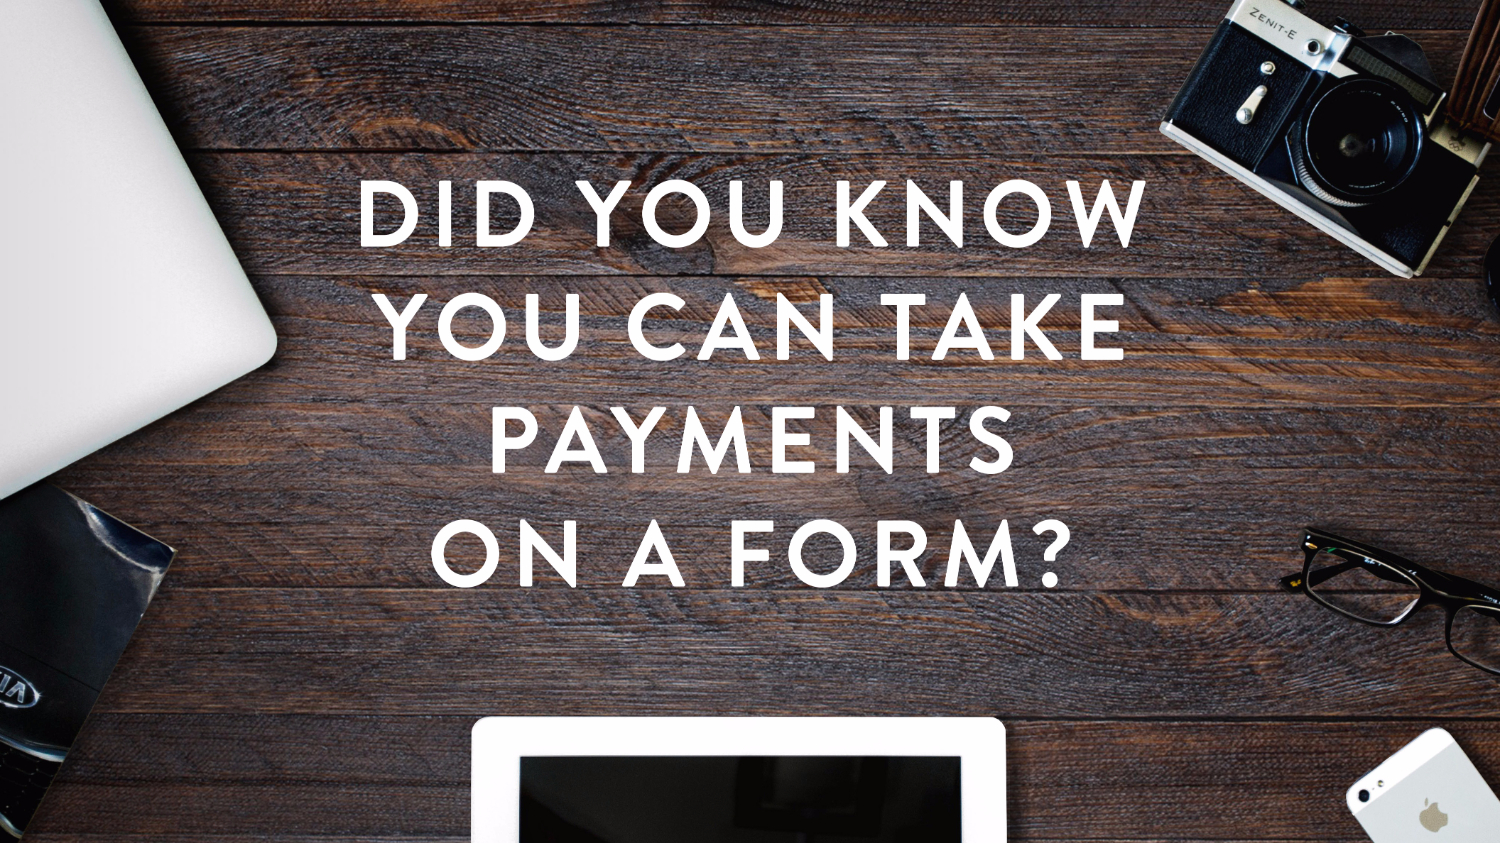 Did You Know? You can take payments on a Form!